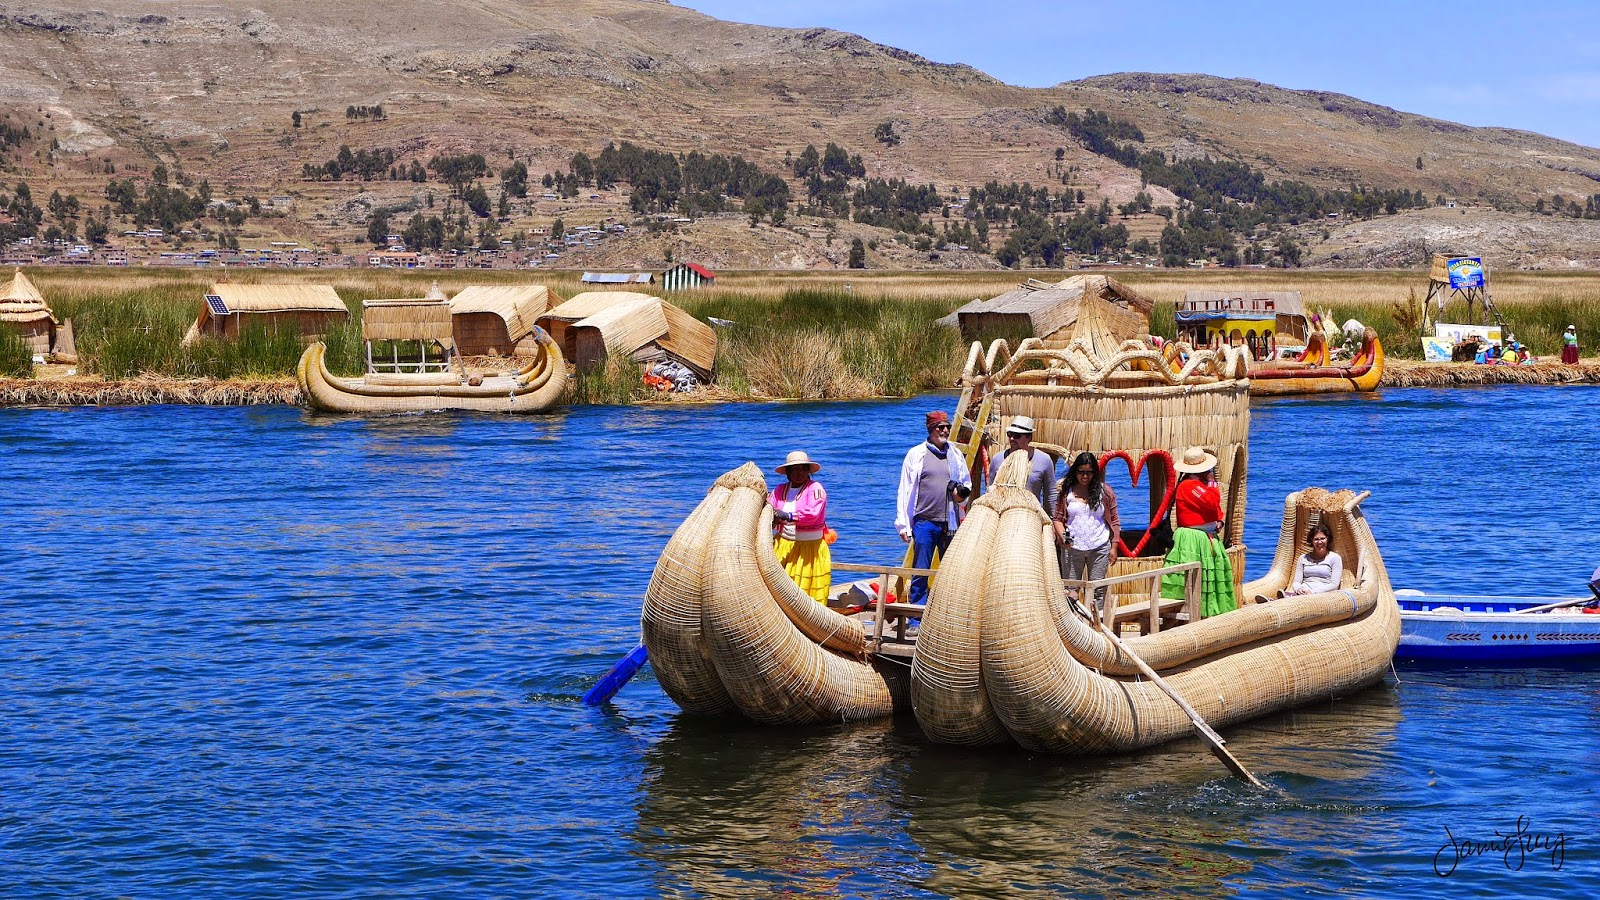 Floating Island of Uros, Lake Titicaca, Peru